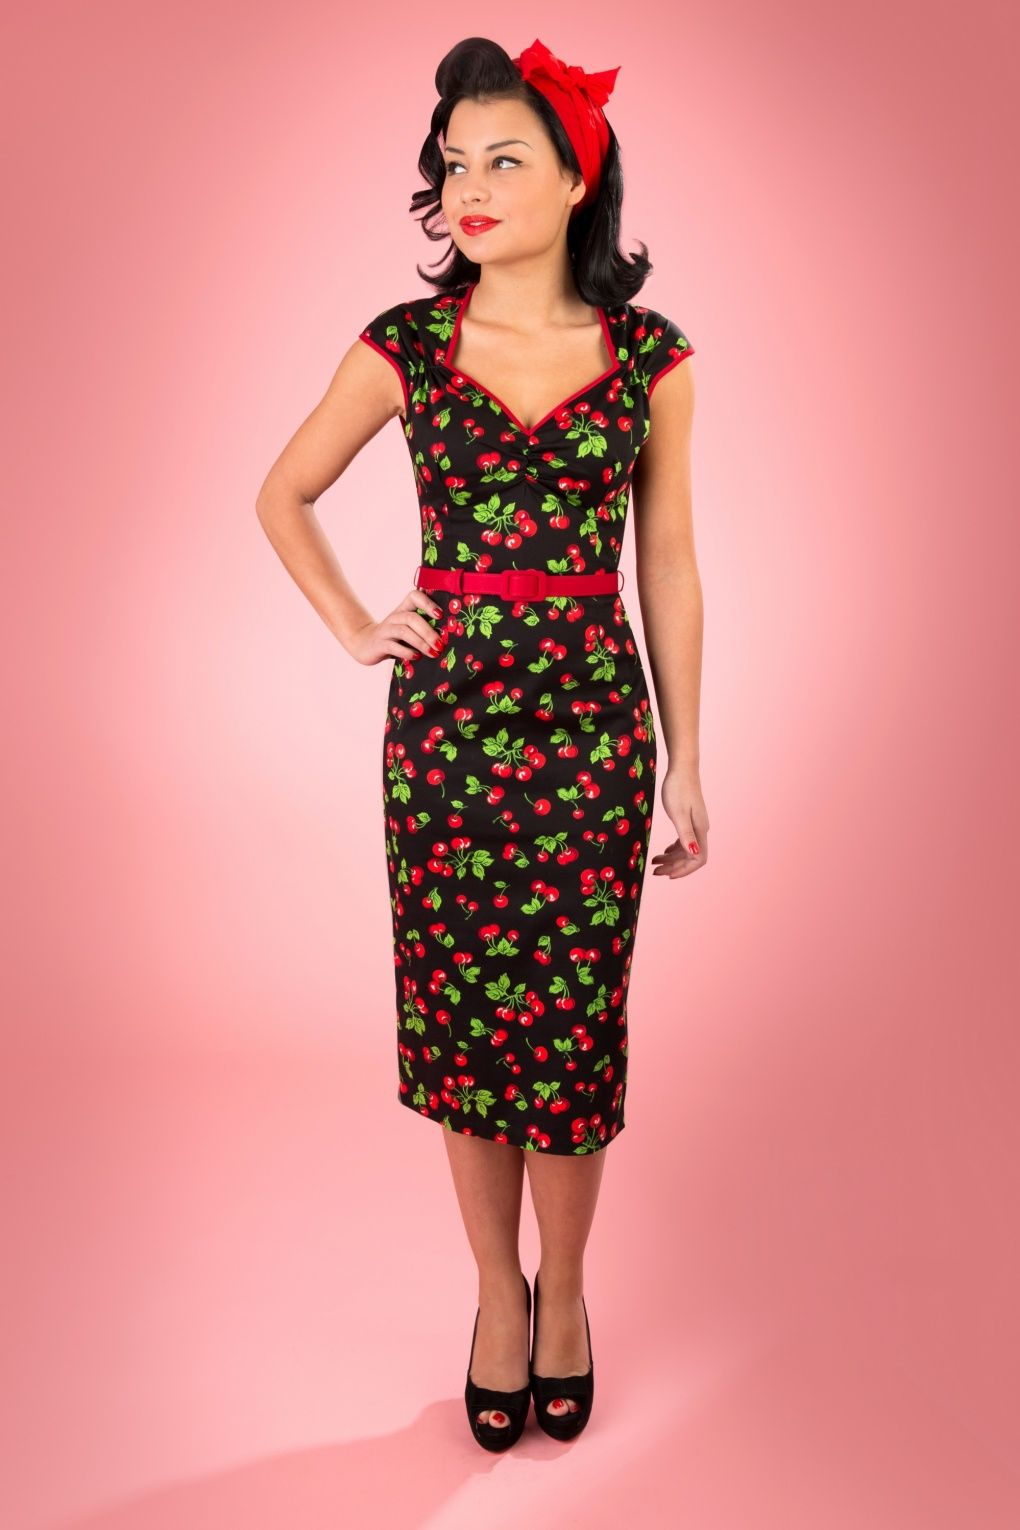 50855995fdcd44 Pinup Couture - Natasha Black Cherry Sateen pencll dress Psychobilly